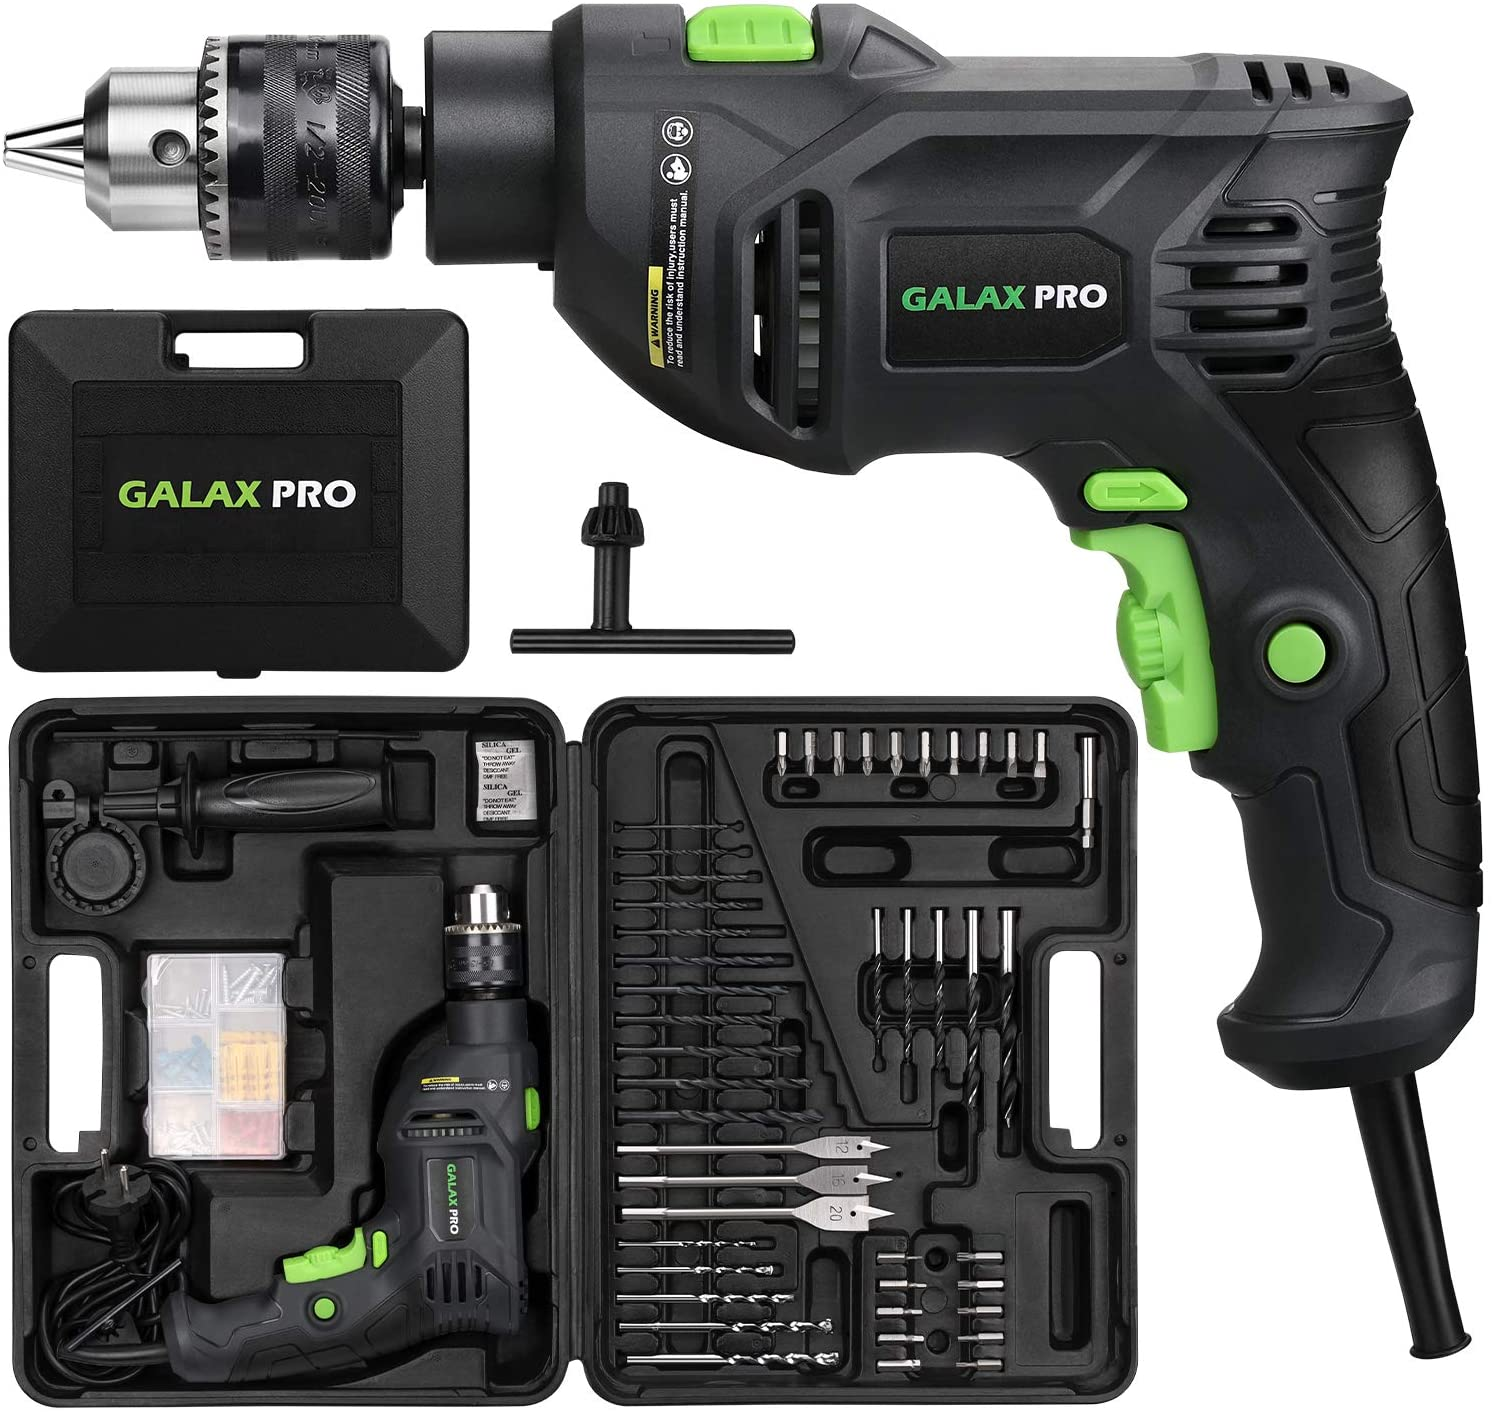 Nippon regular agency Online limited product GALAX PRO 5Amp 1 2-inch Corded Accessor Impact Drill with 105pcs